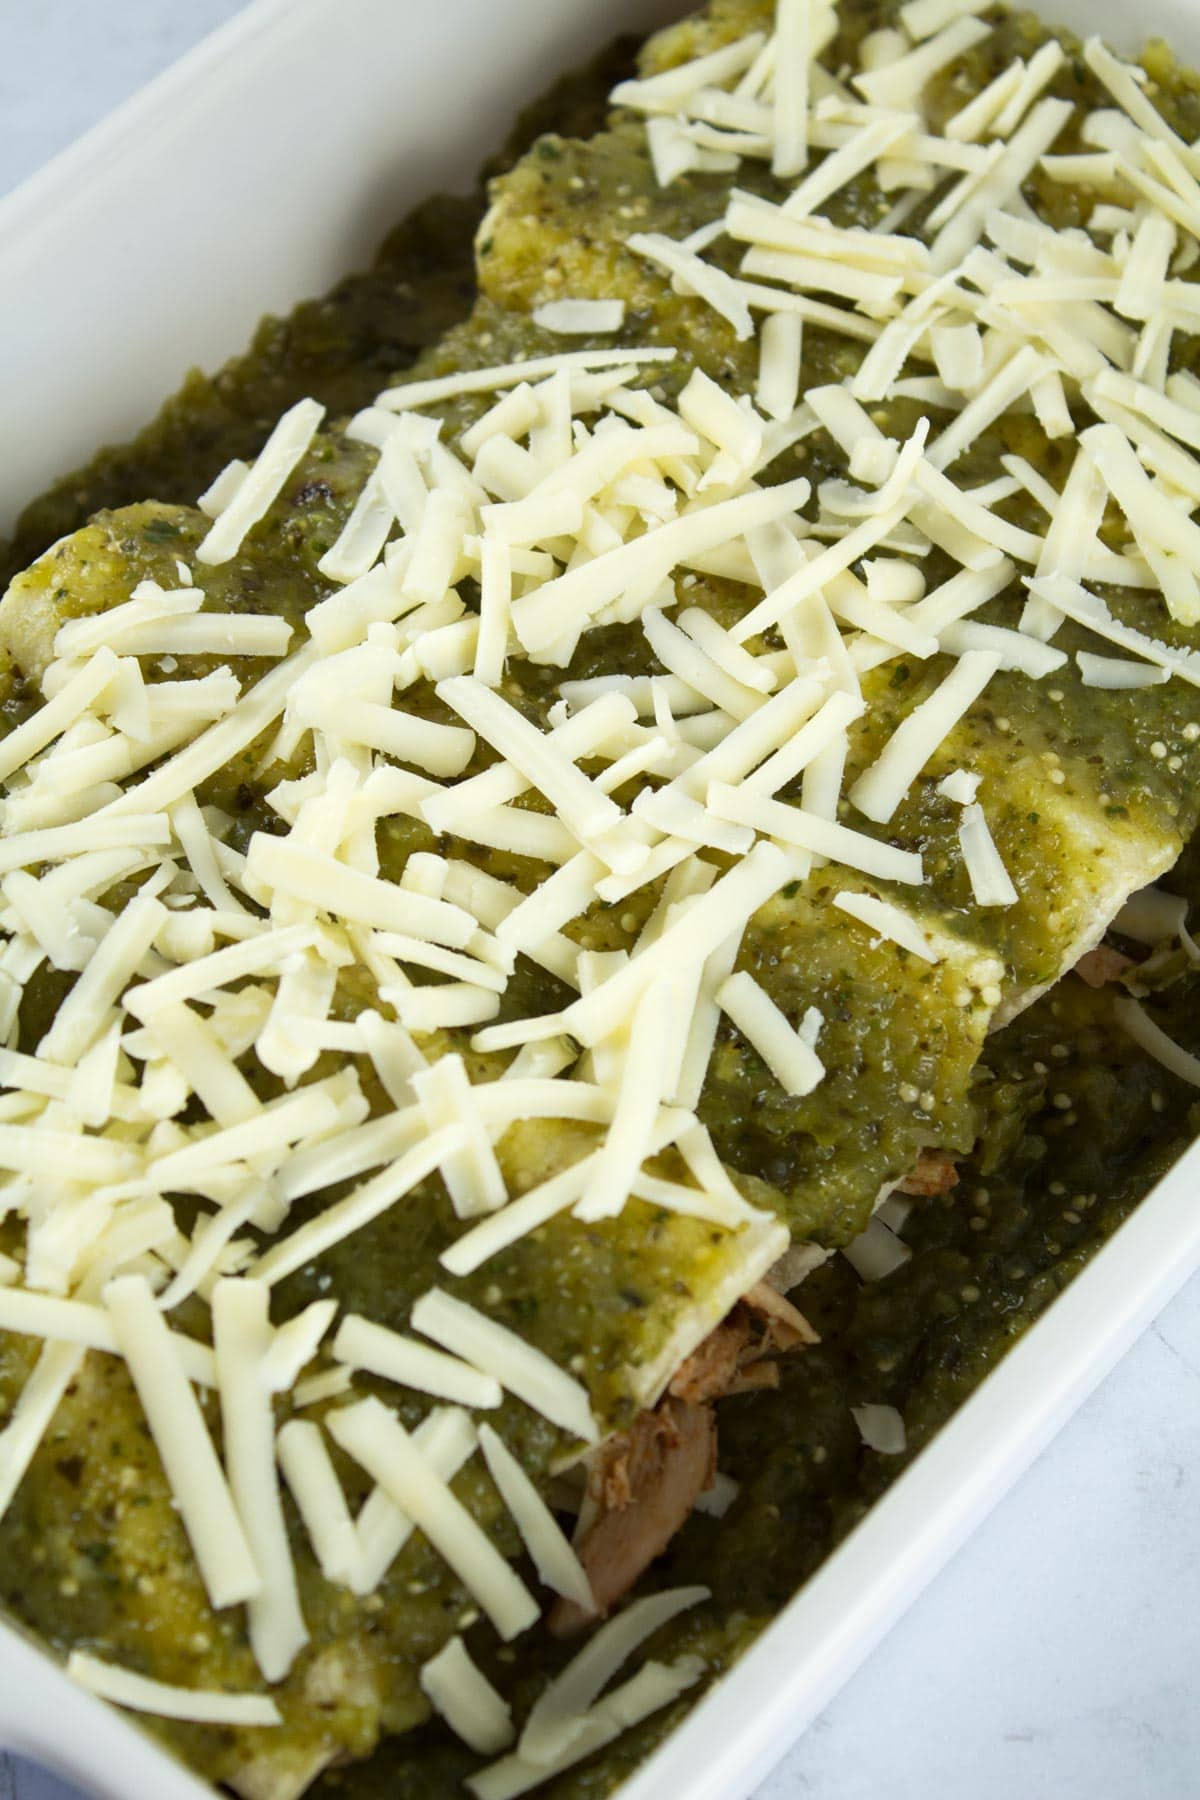 Pan of enchiladas sprinkles with cheese before baking.